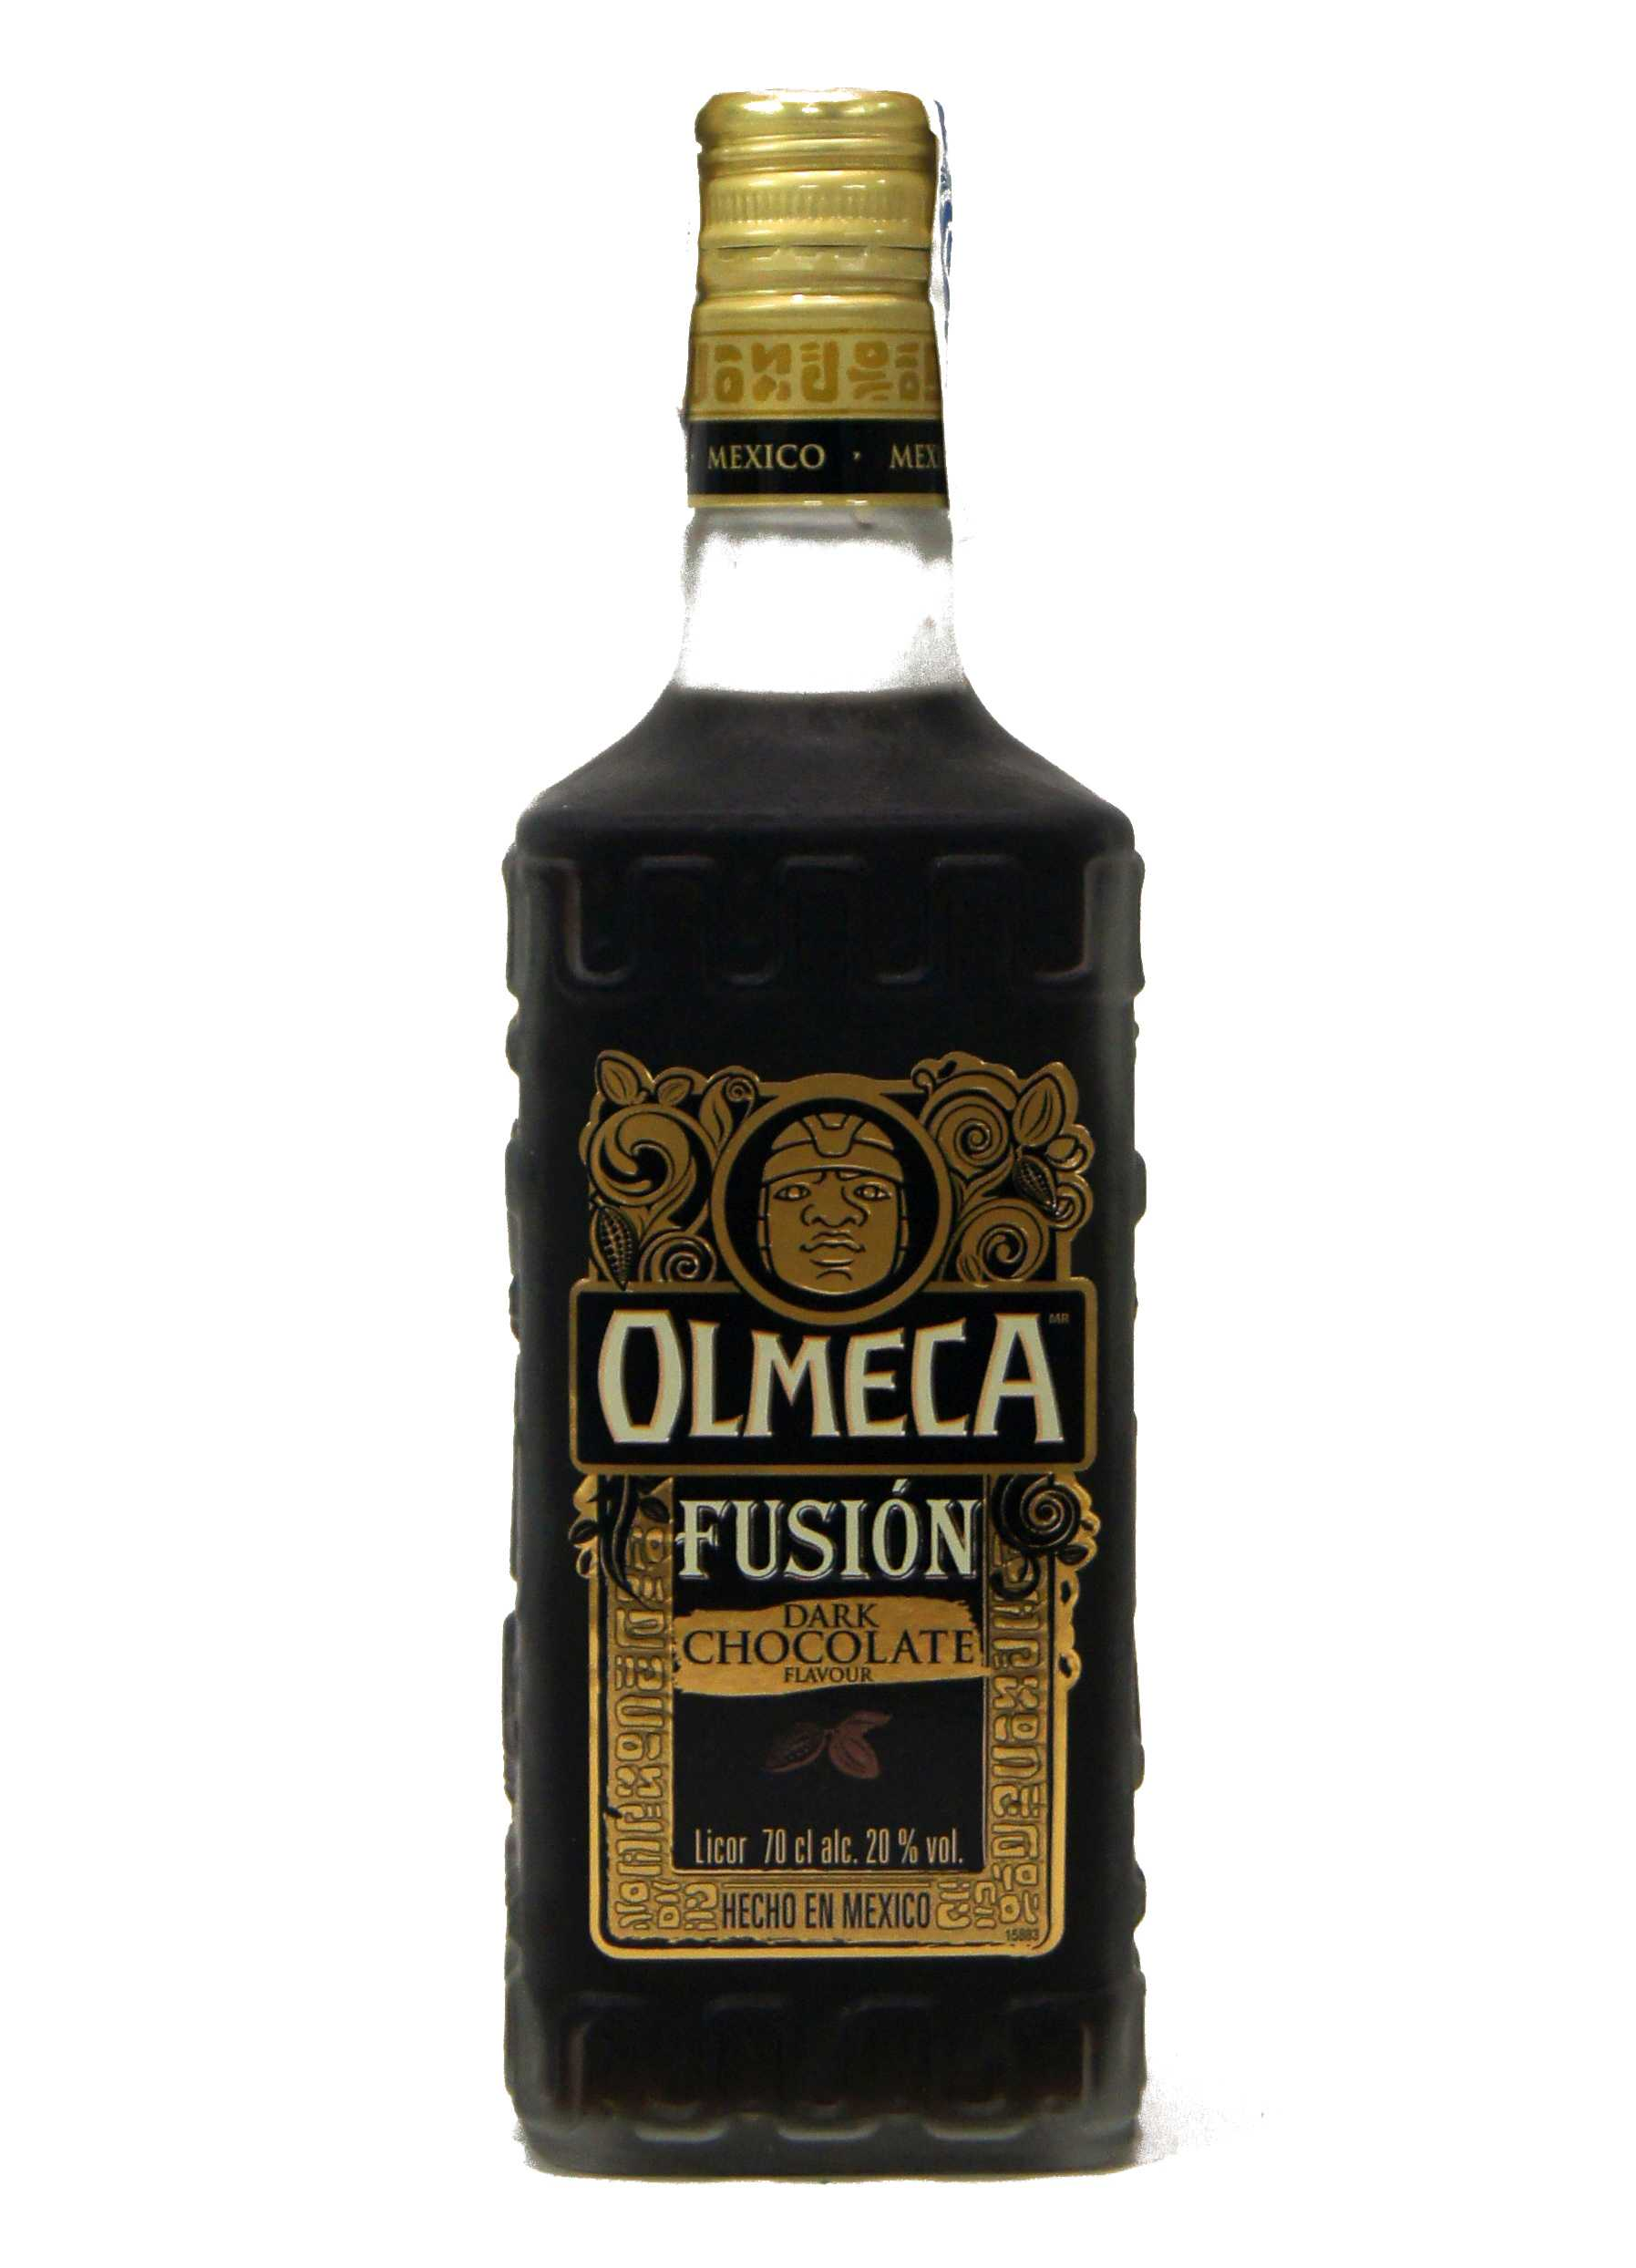 Olmeca Chocolate Oscuro